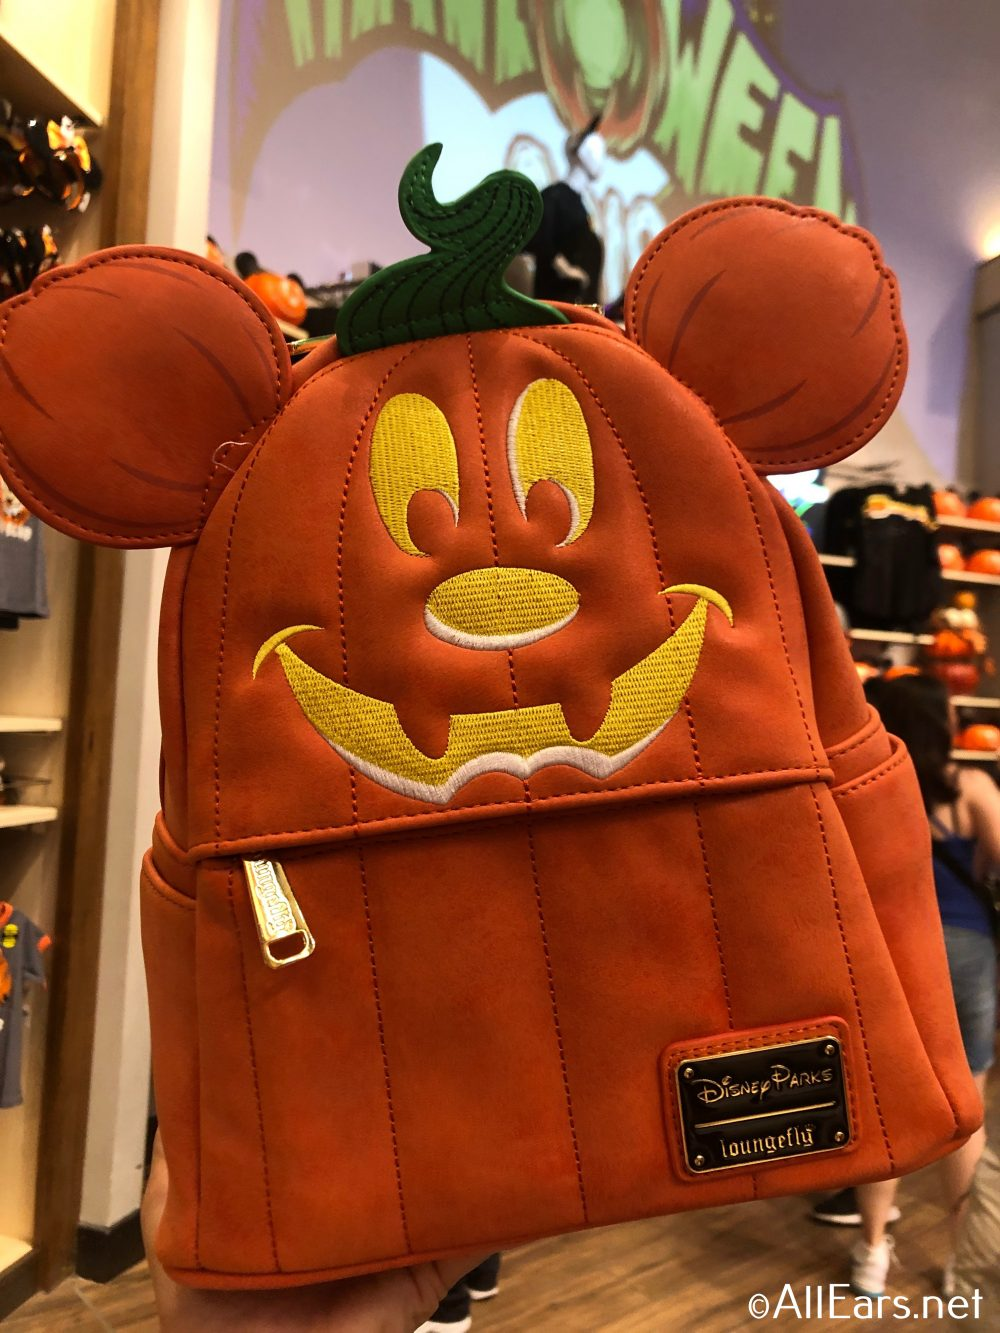 Disneyland Halloween 2019 Merchandise.No Tricks Just Treats New Halloween Merchandise Lands At Walt